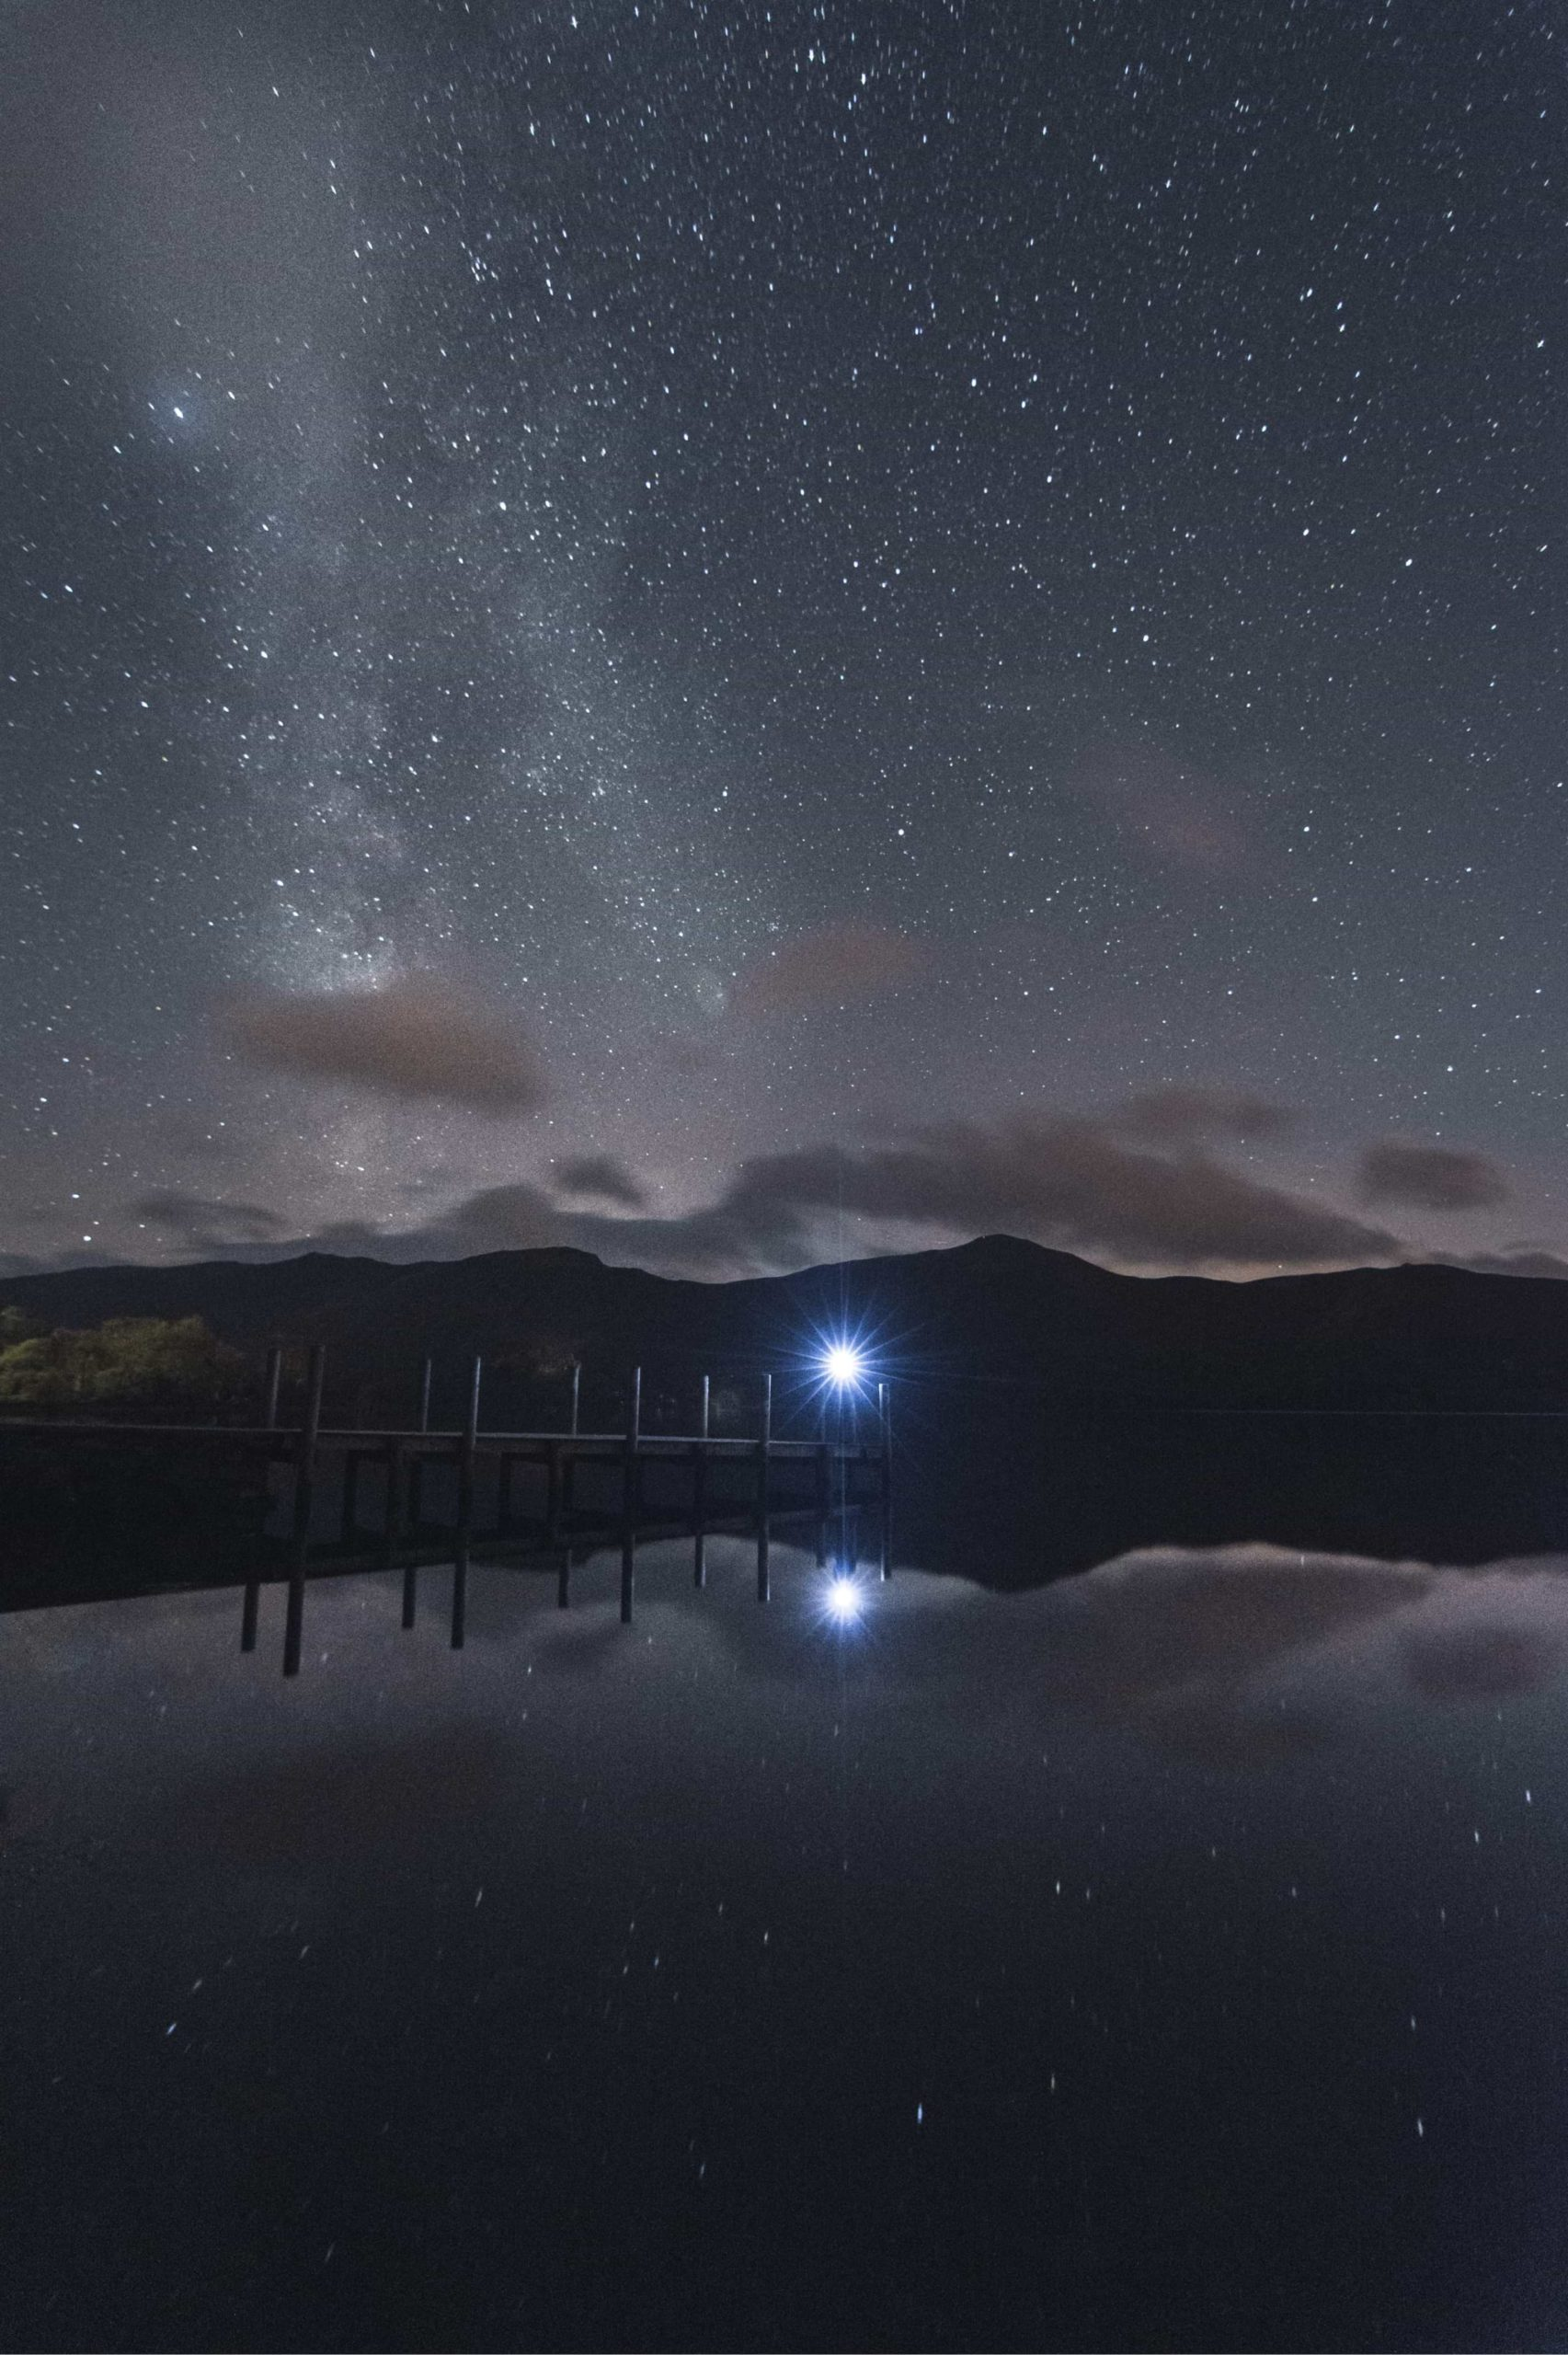 The milky way's galactic core can be seen striking down and meeting a jetty stuck out over the surface of a lake. At the end of the jetty, a person wearing a headtorch looks up to the starry sky.